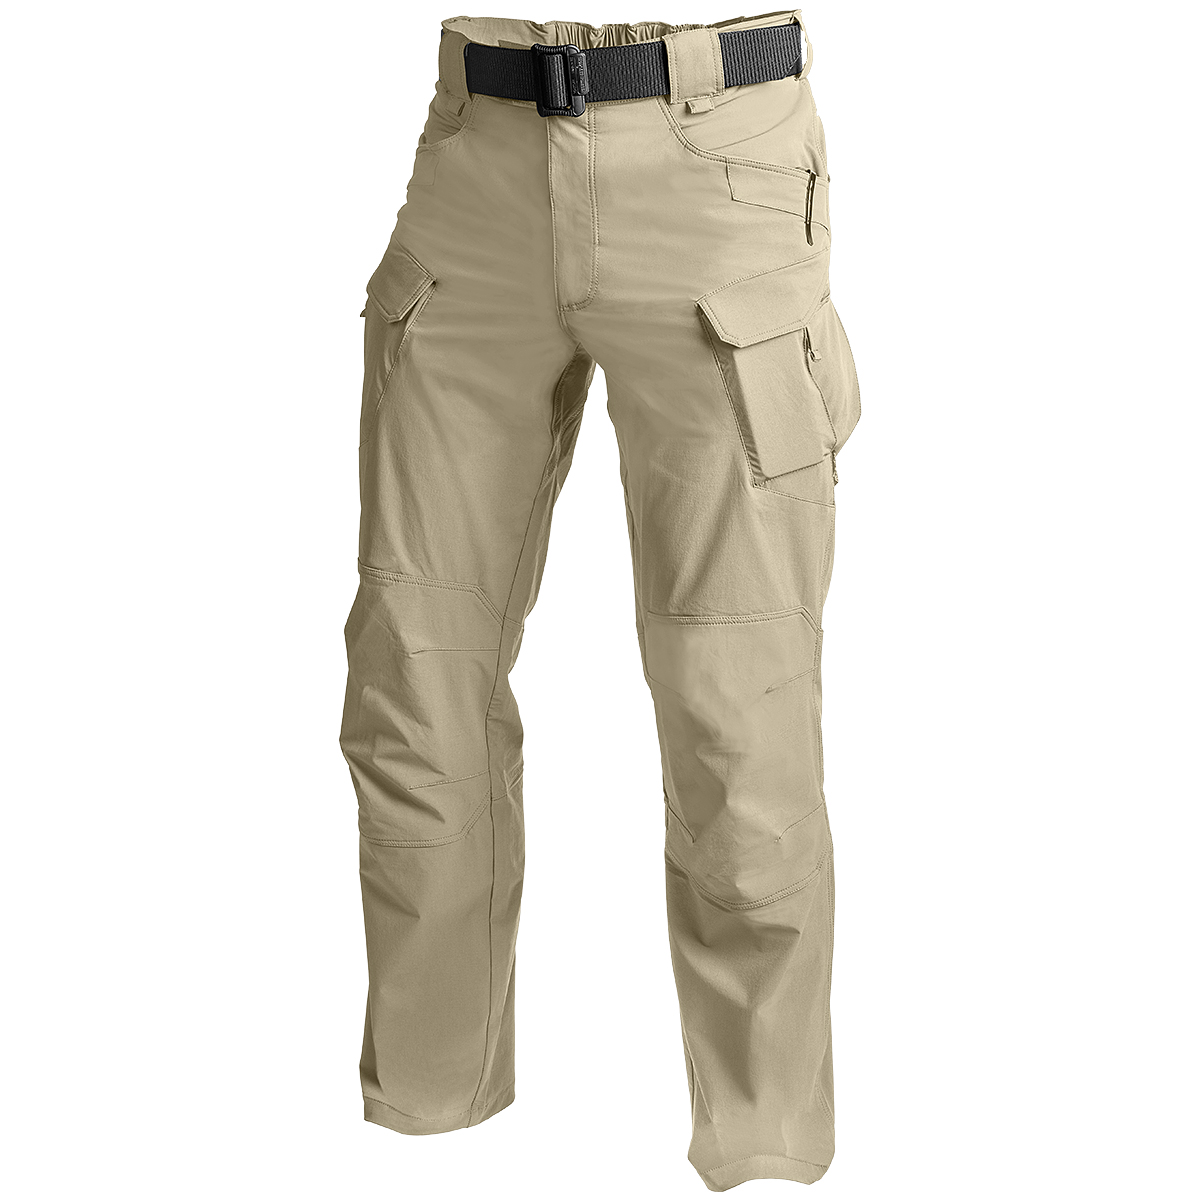 b57f3c8b2961cd Details about Helikon Outdoor Tactical Mens Cargo Trousers Hiking Fishing Combat  Pants Khaki